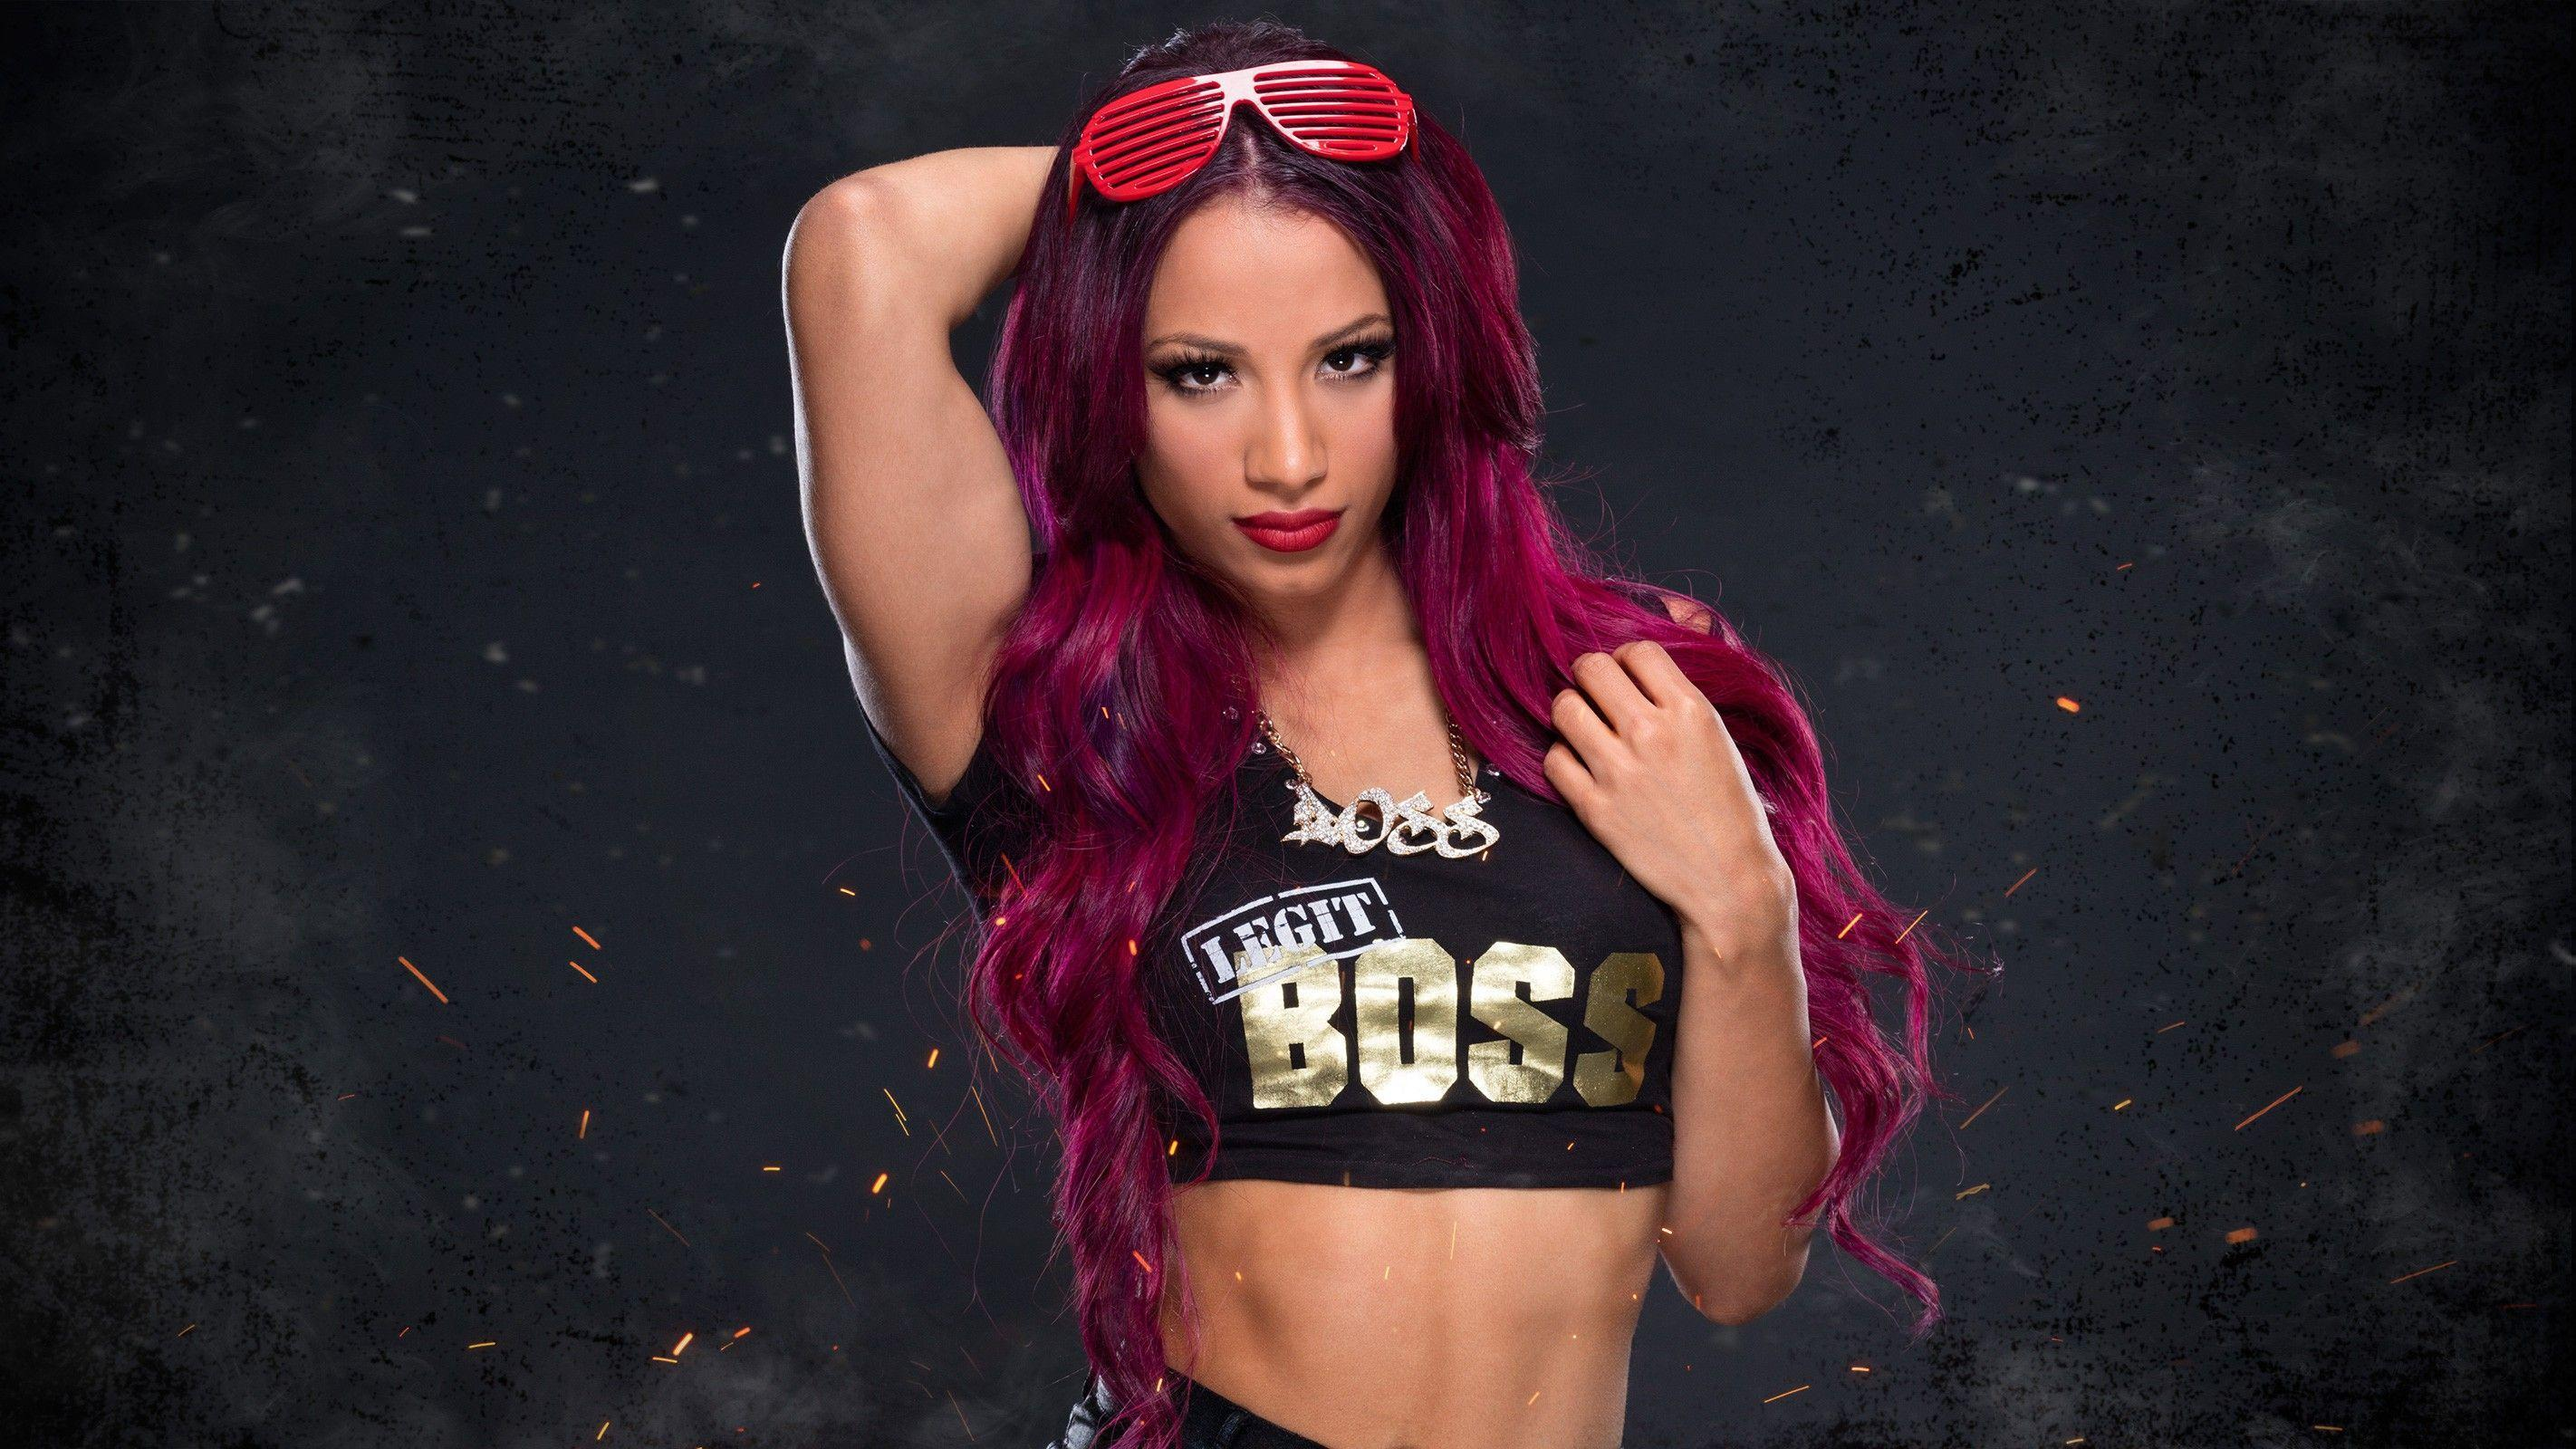 c907cf3d4 dyed hair, #purple hair, #WWE, #wrestling, #Sasha Banks